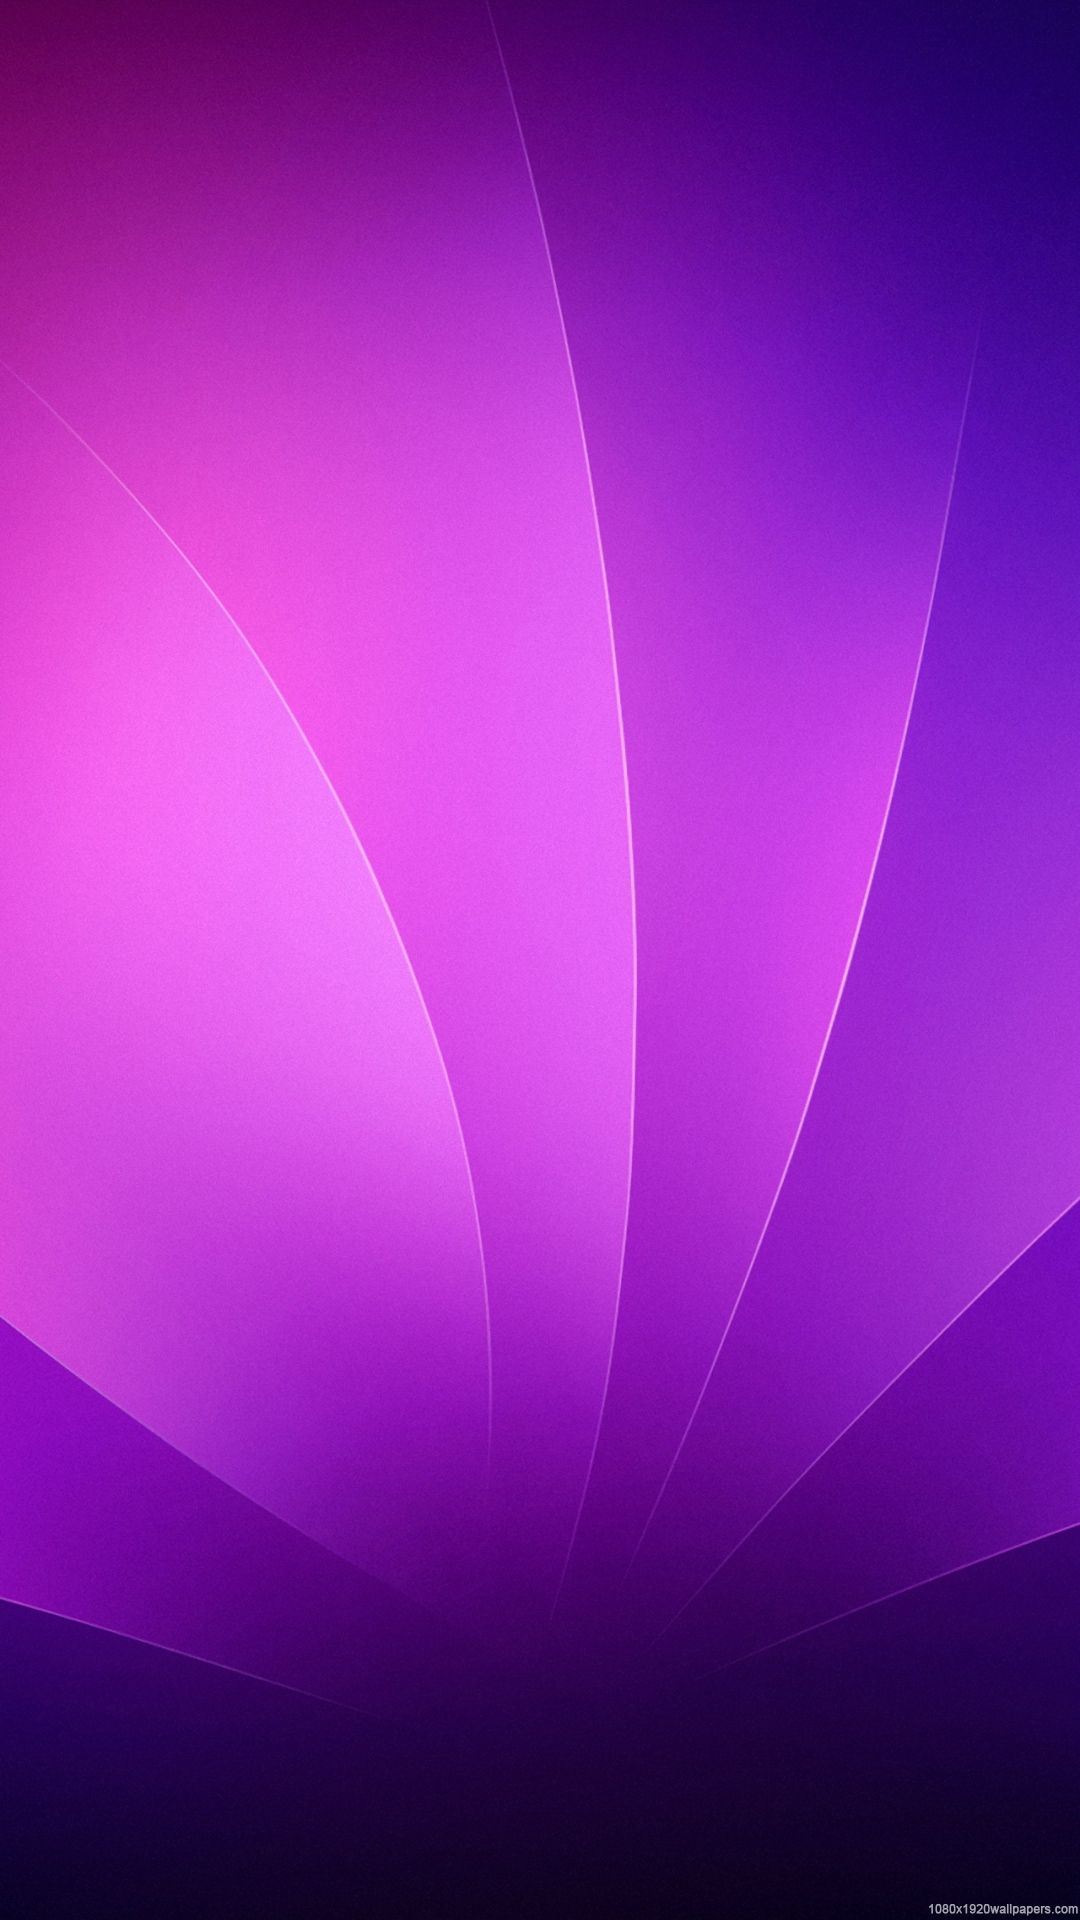 1080x1920 leaves line abstract purple wallpapers HD   1080P 1080x1920